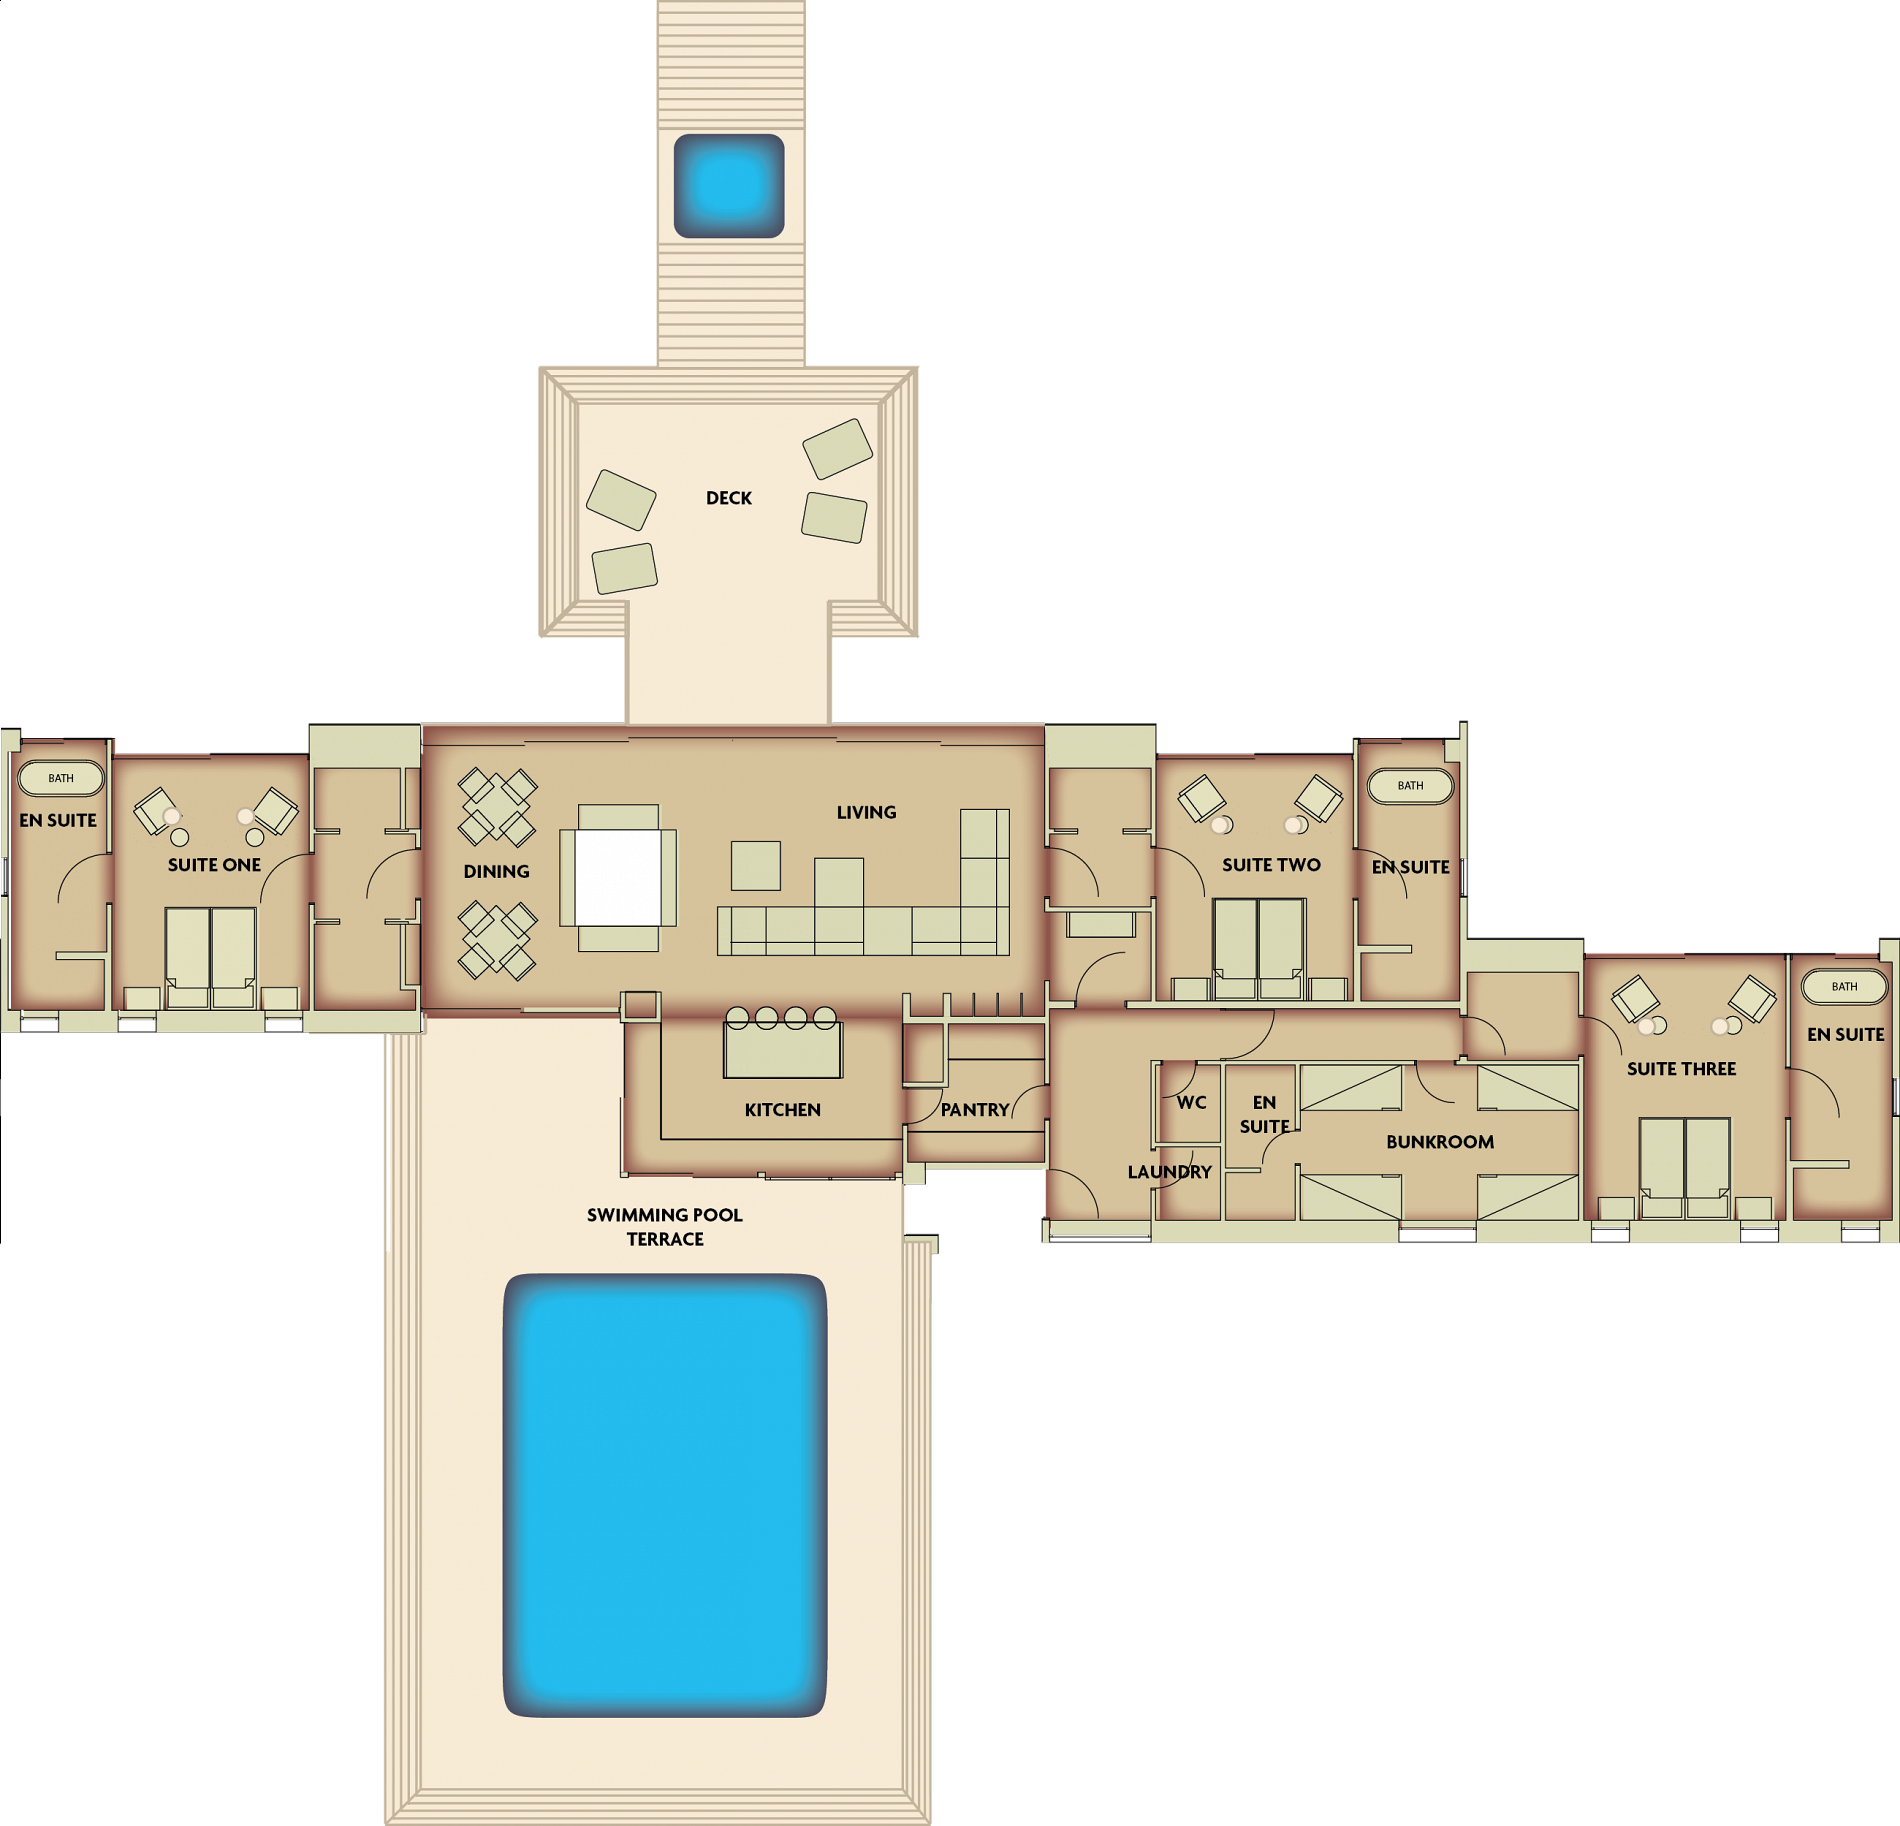 Floorplan of Scrubby Bay